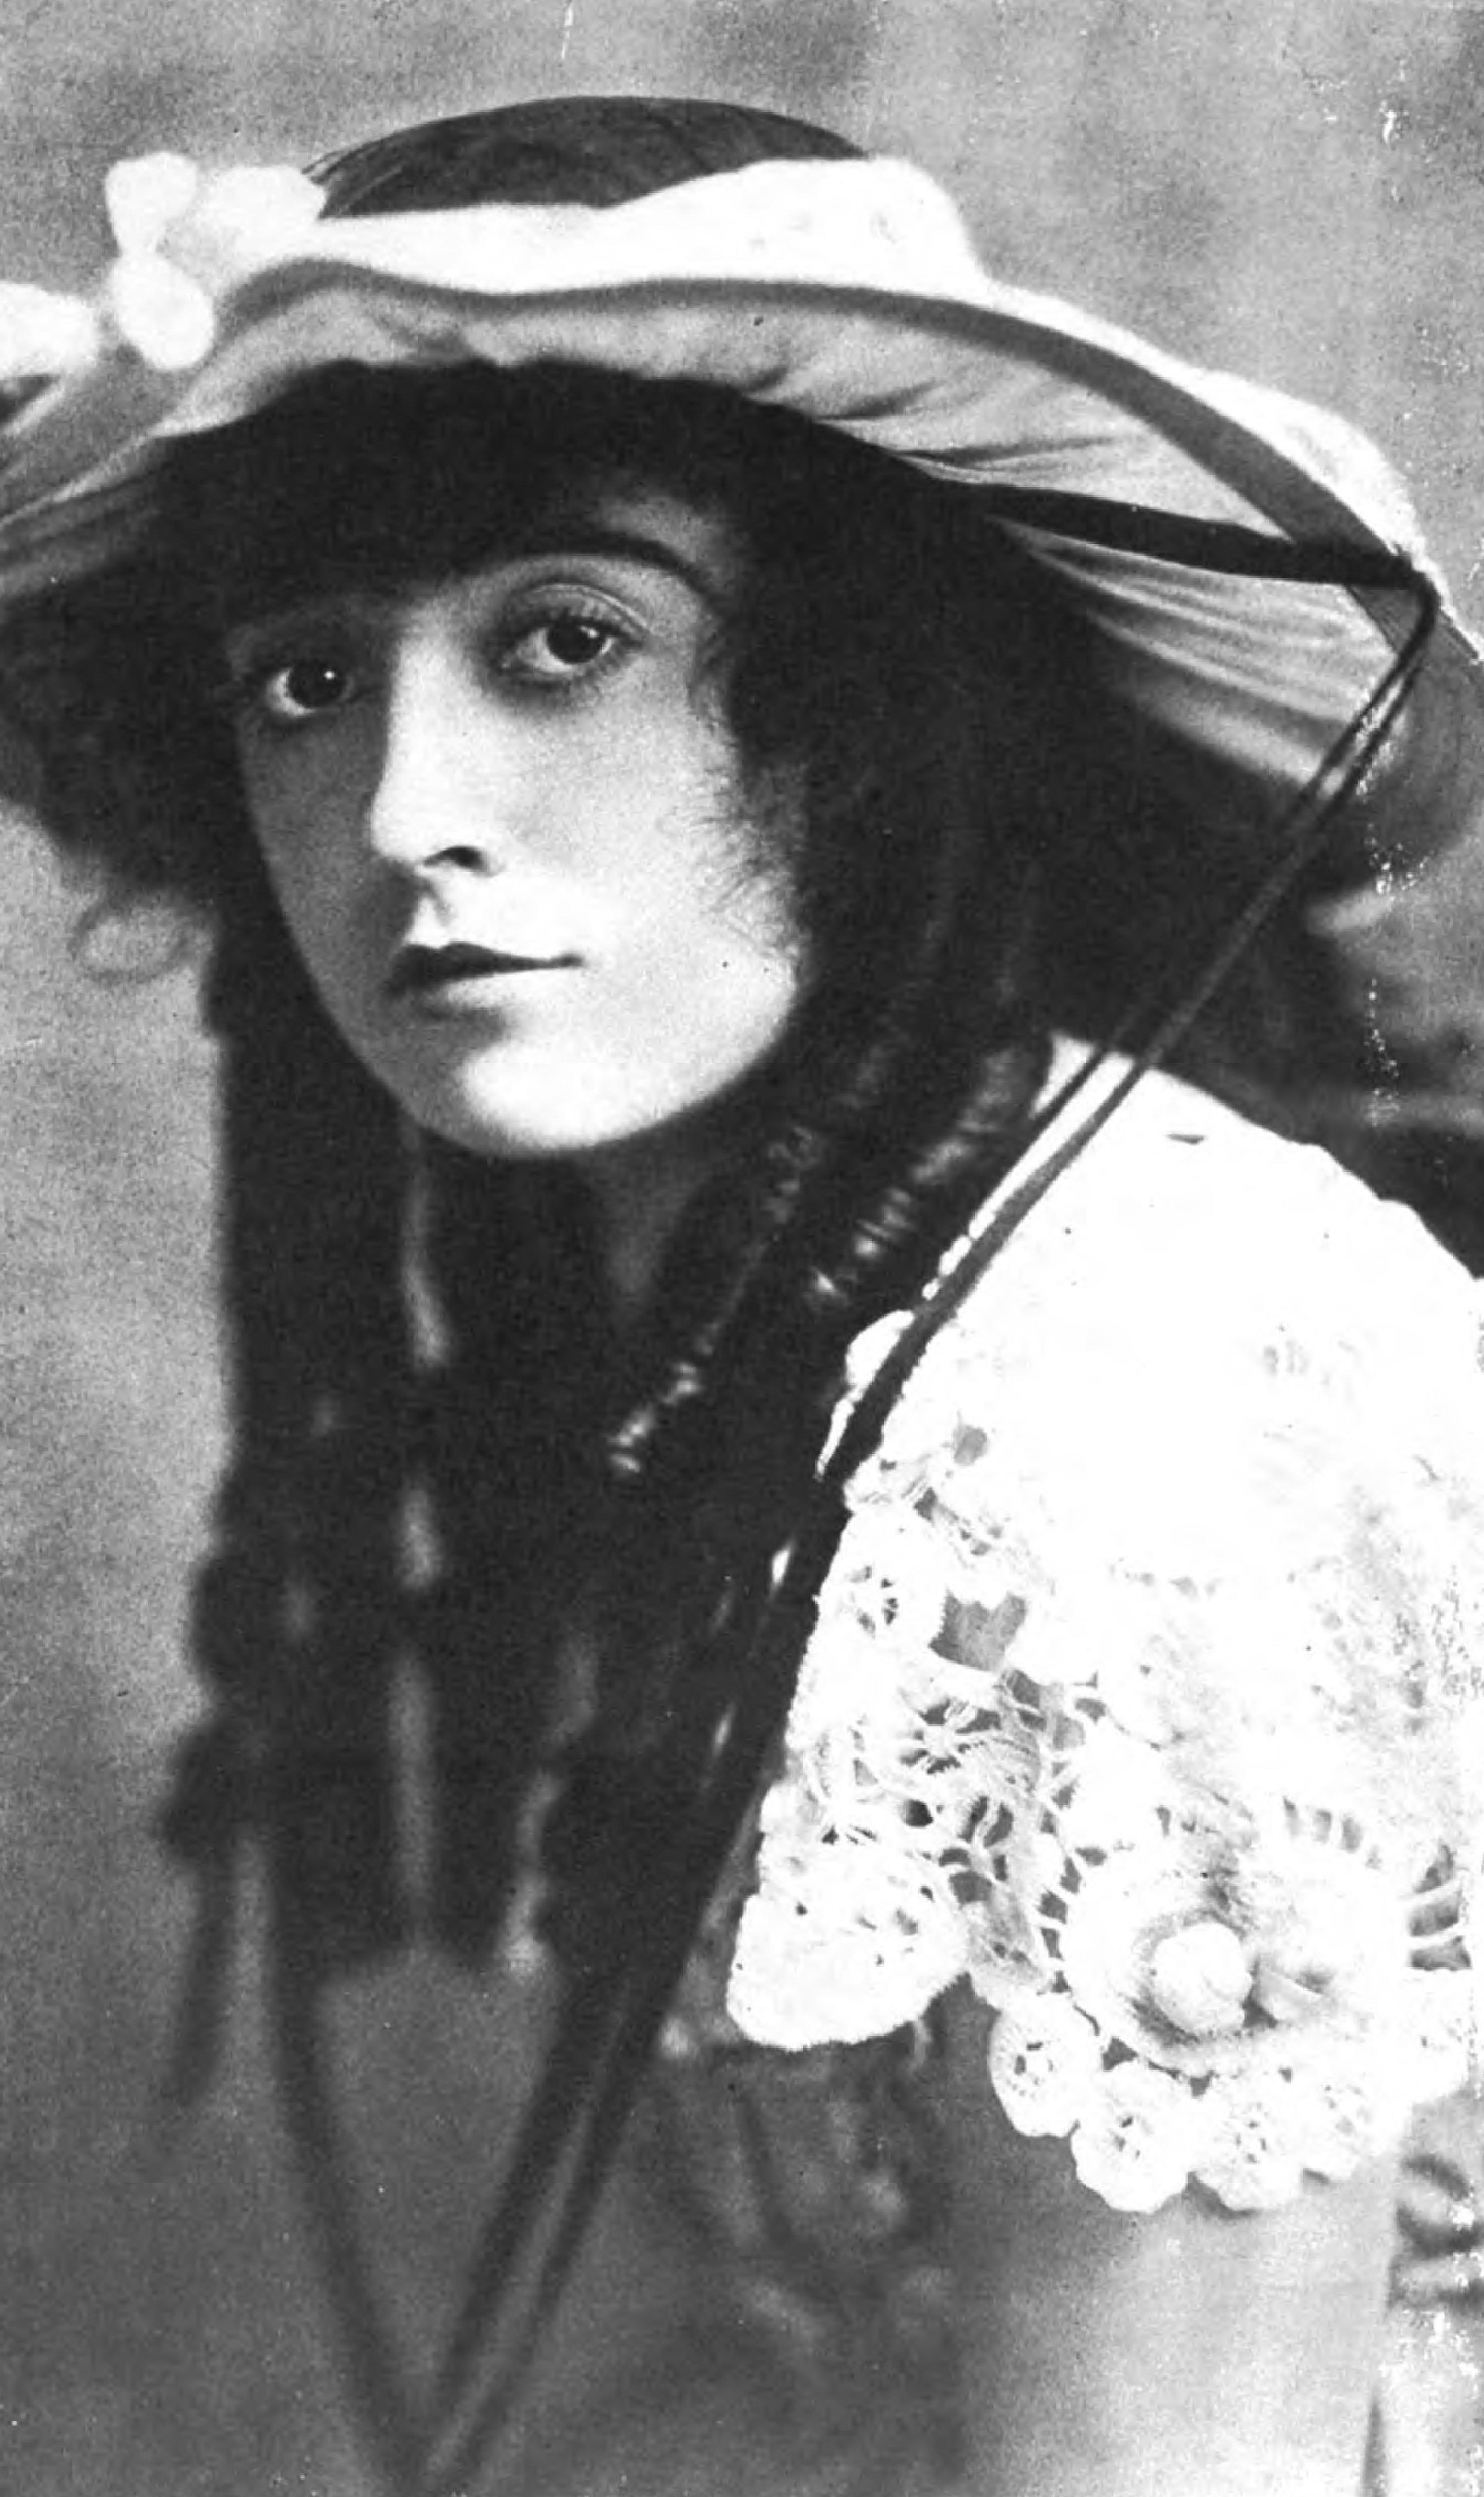 Forum on this topic: Clara Seley, mabel-normand/